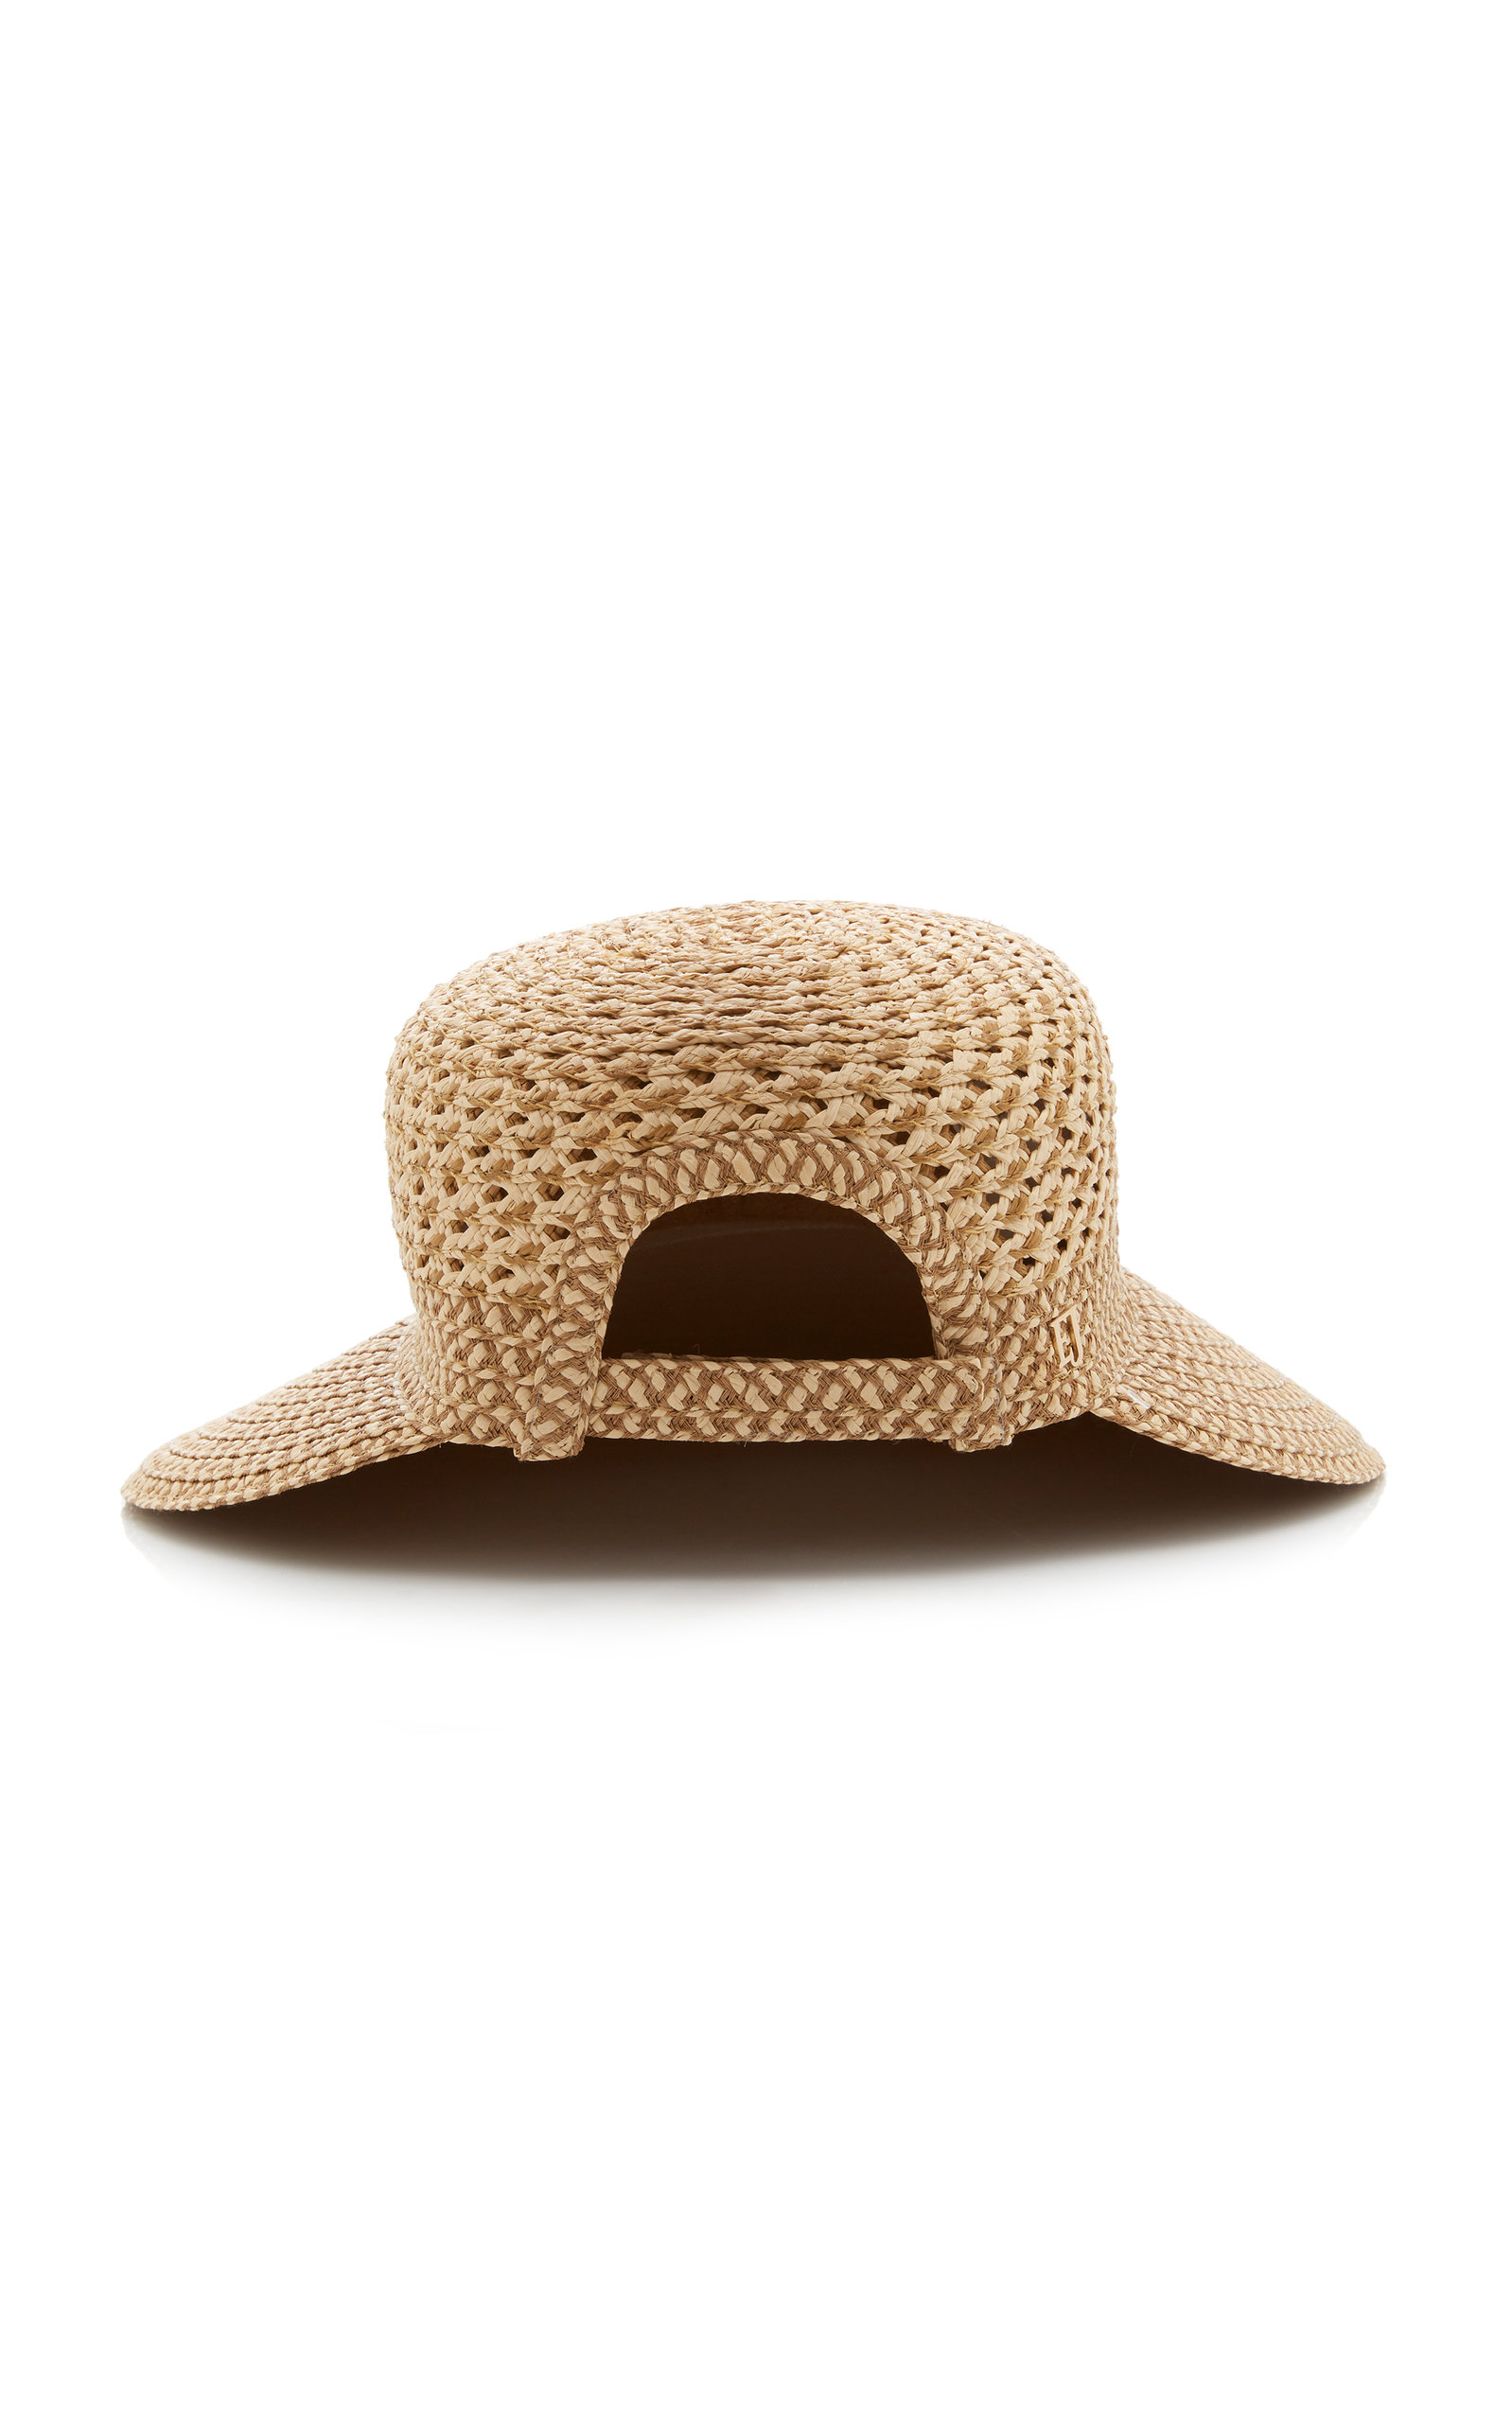 78cb9a2134ca6 Eric JavitsTrophy Gal Woven Hat. CLOSE. Loading. Loading. Loading